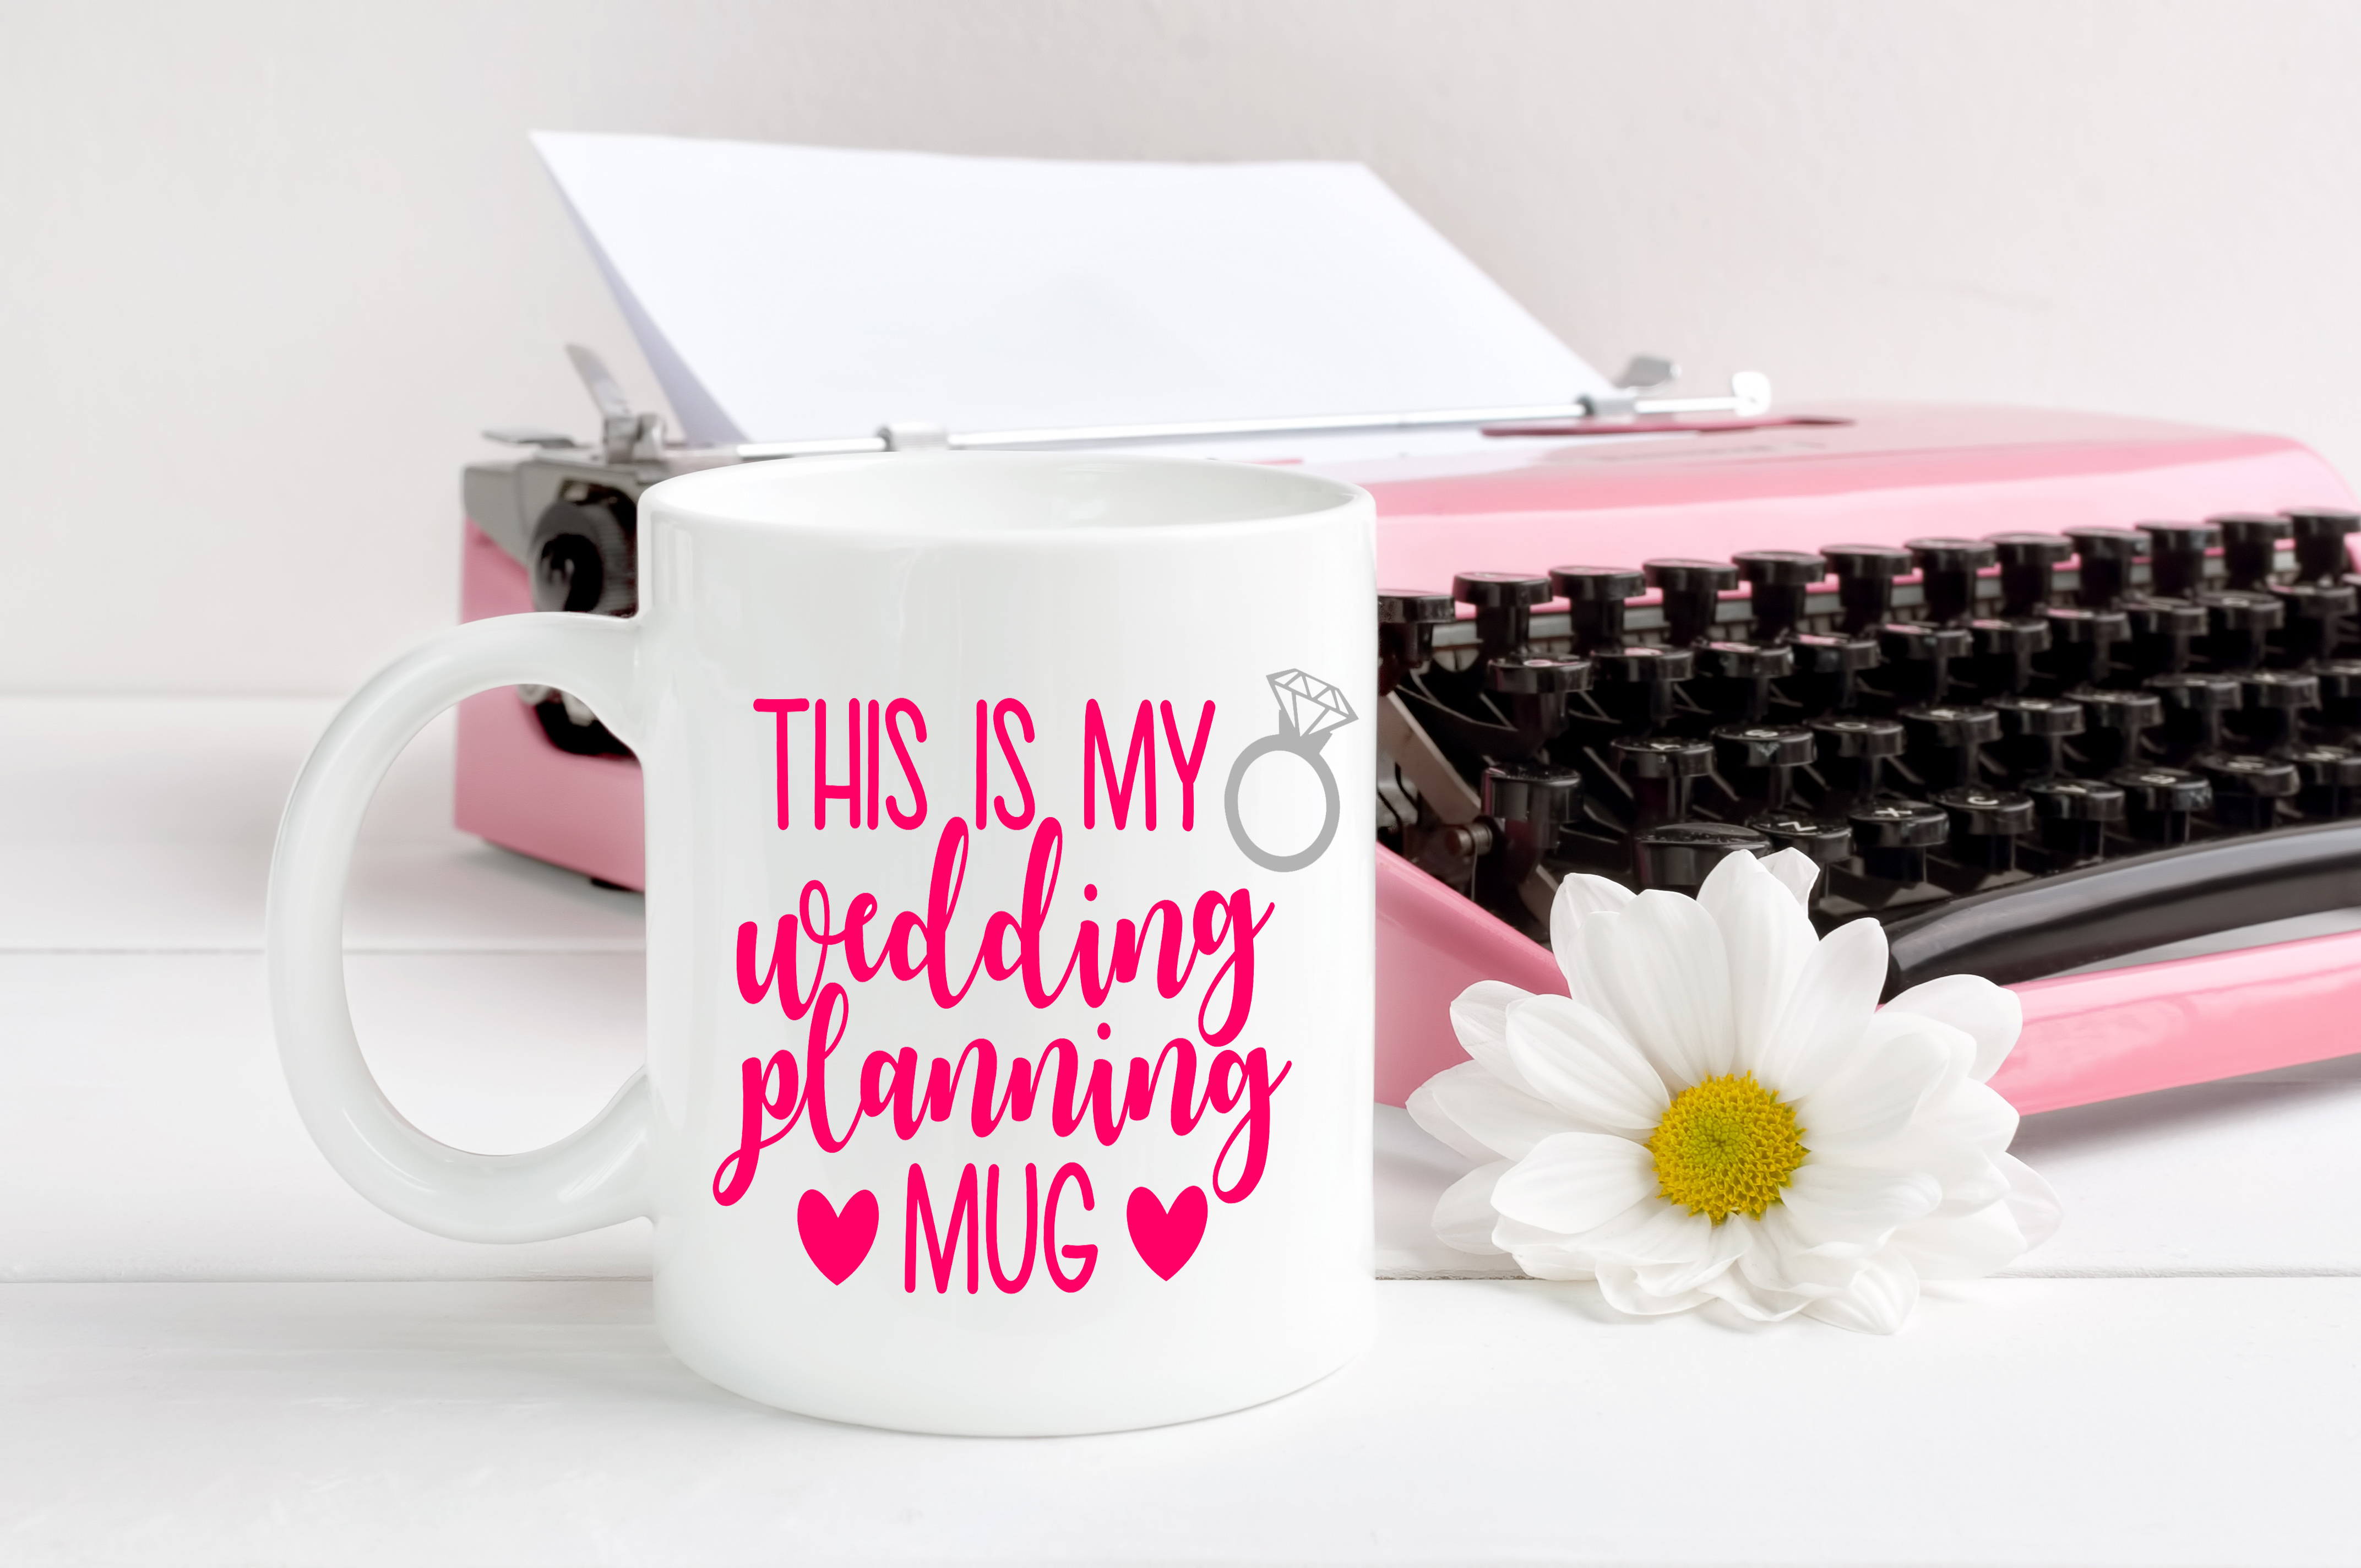 This is my wedding planning mug, by Pretty Party Favors on Zibbet